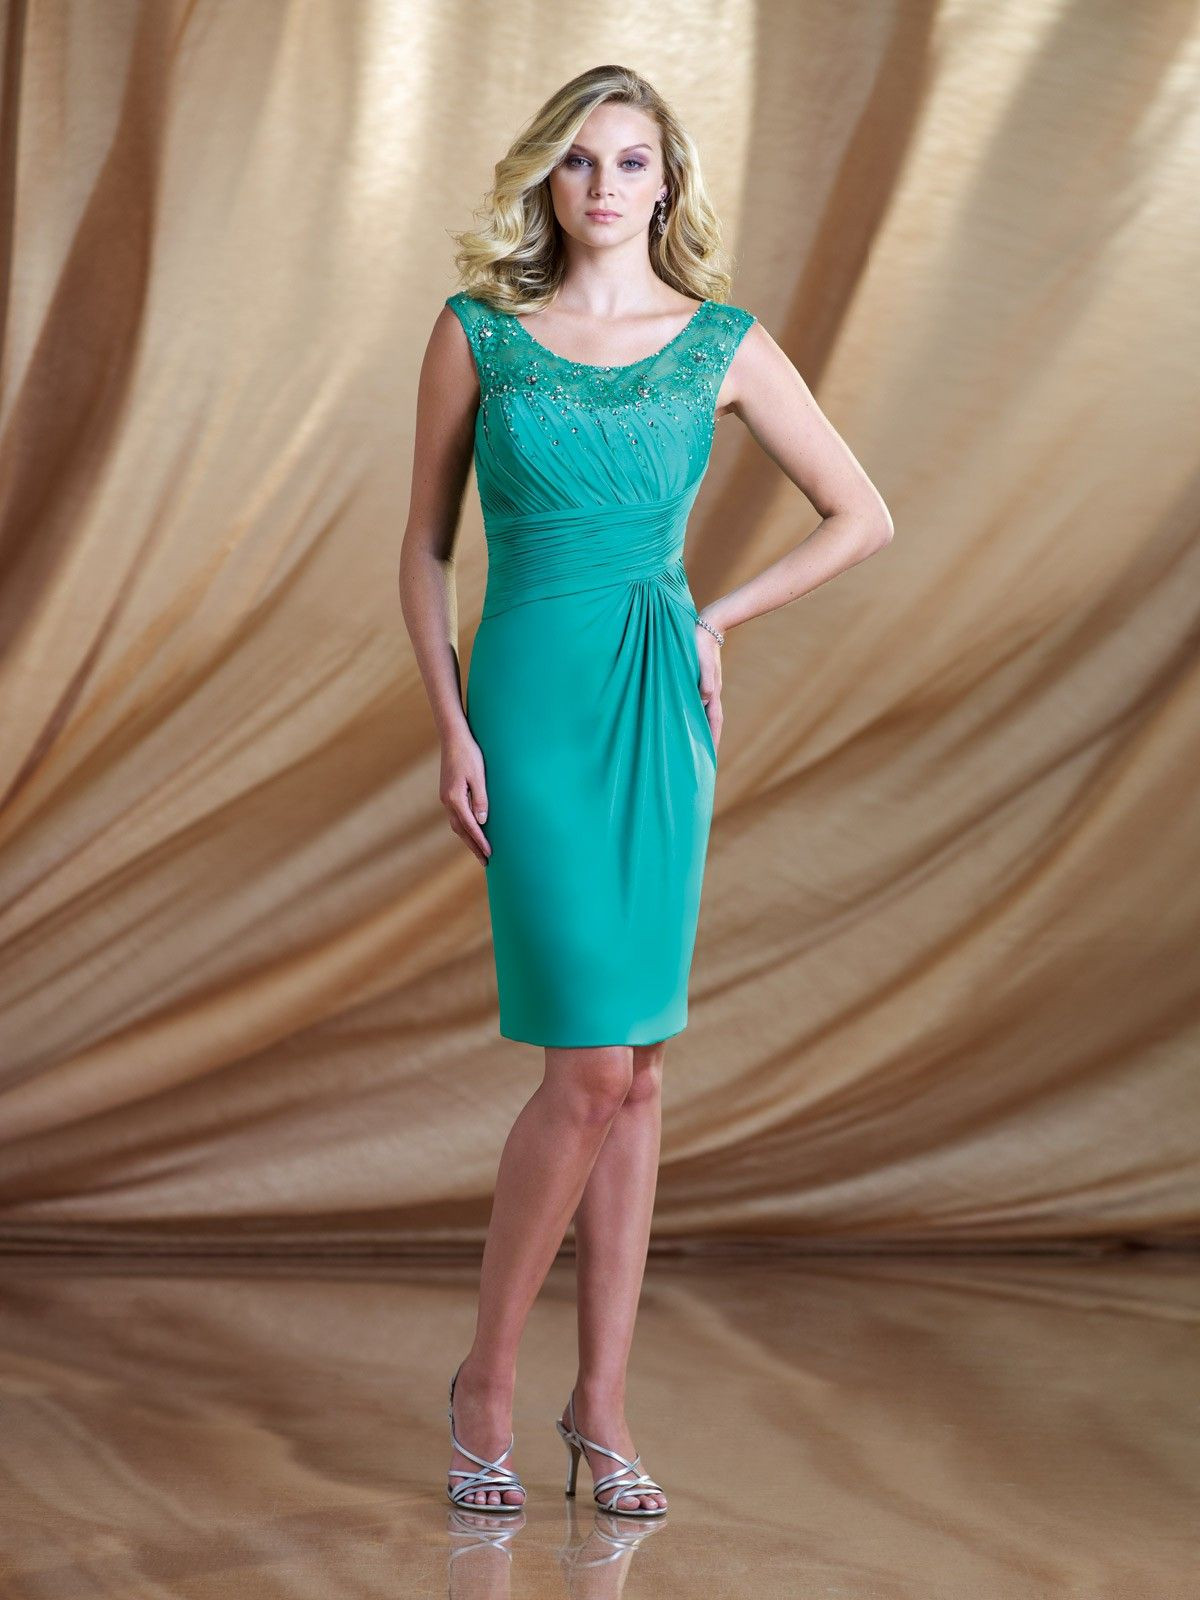 Popular mid length cocktail dresses buy cheap mid length cocktail popular mid length cocktail dresses buy cheap mid length cocktail ombrellifo Image collections